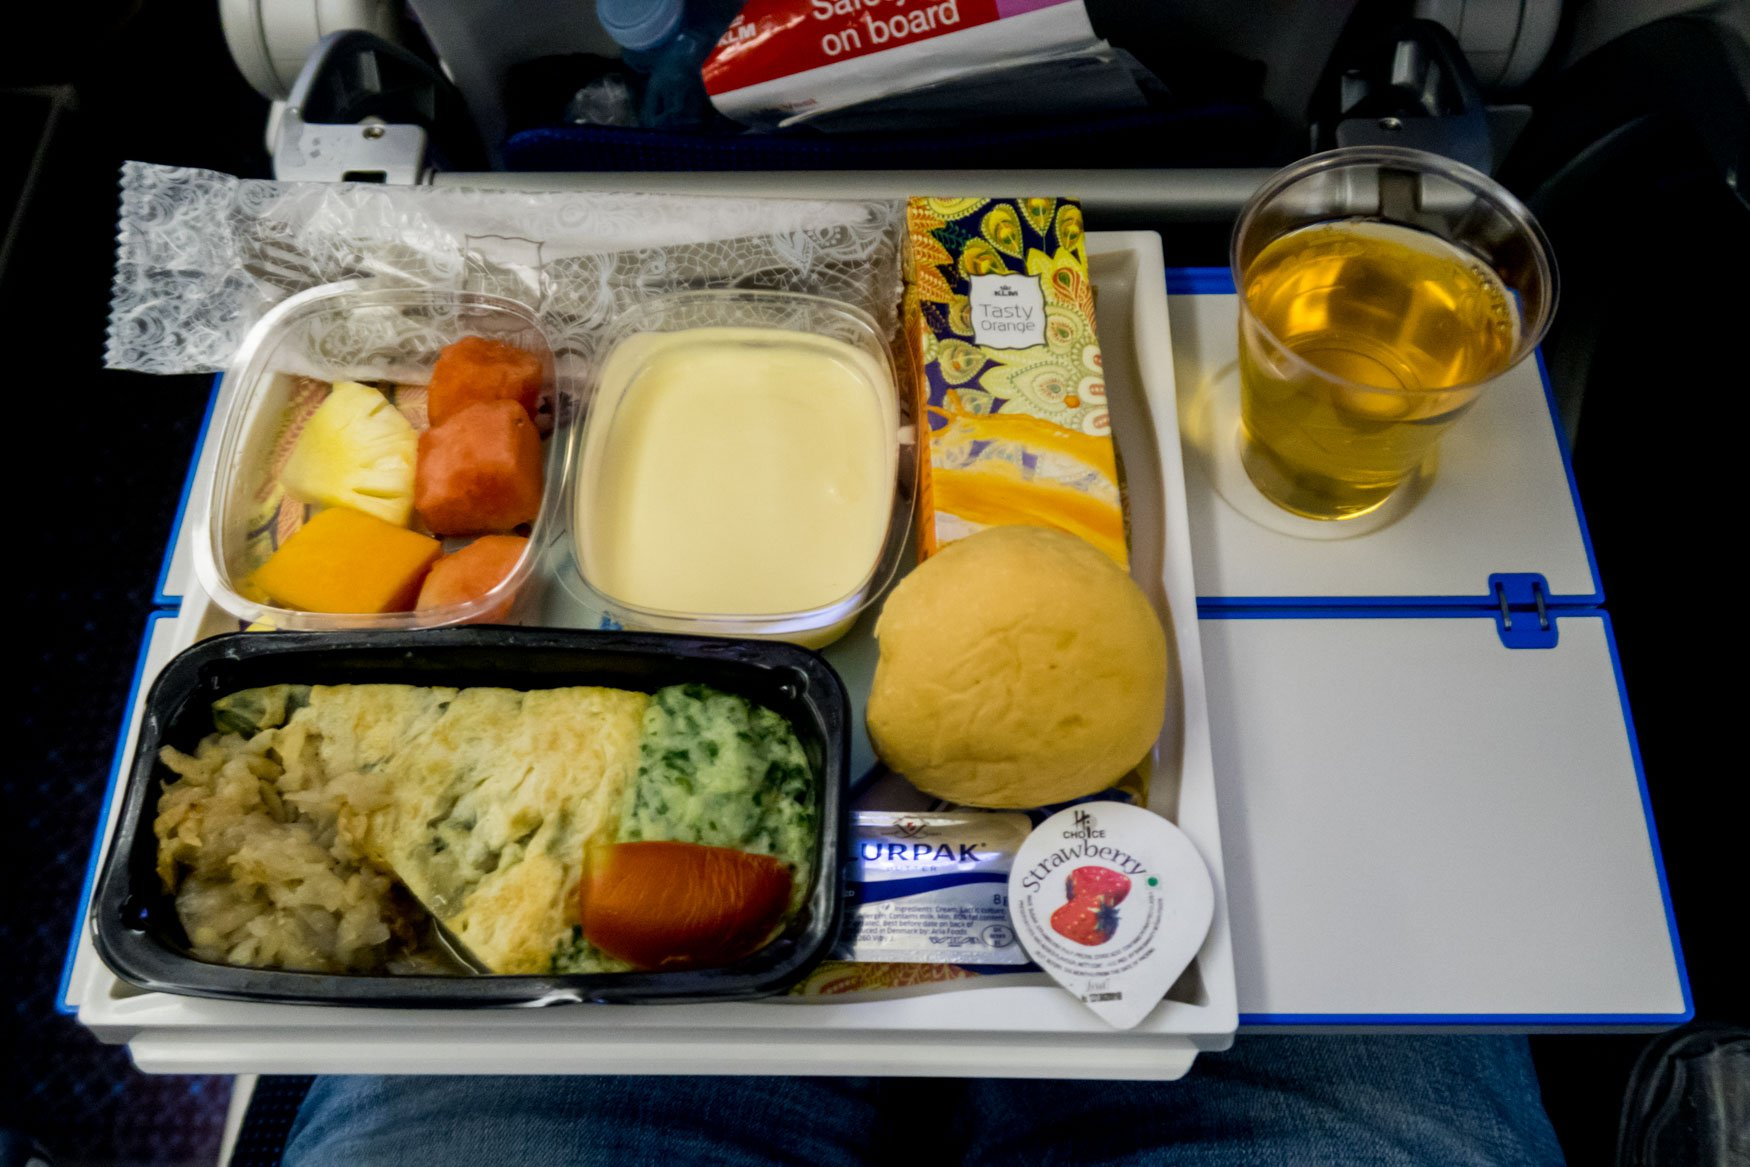 KLM Economy Class Meal